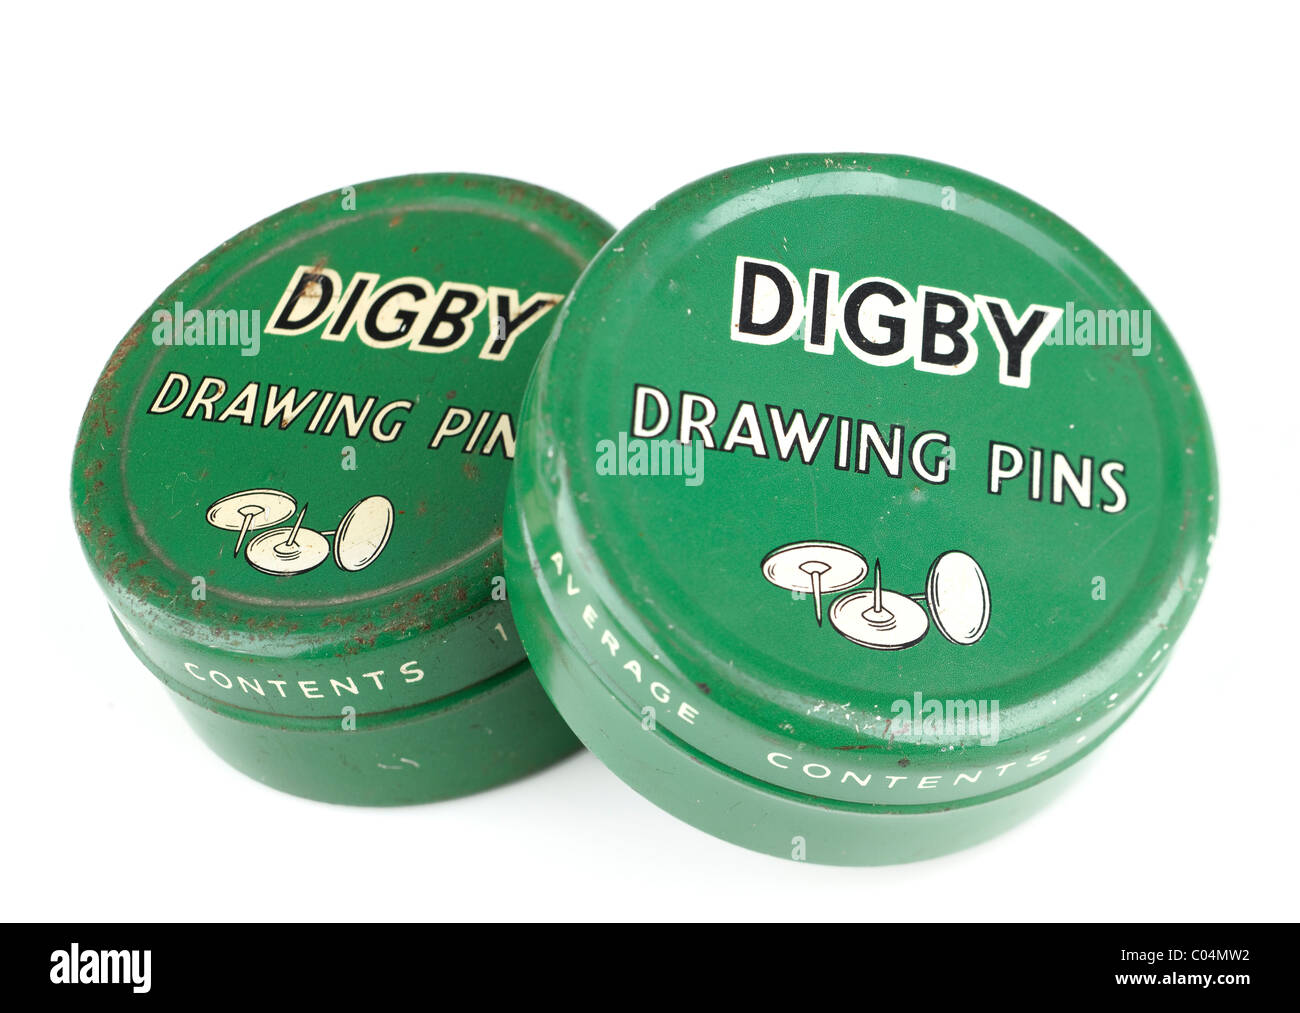 Two old vintage green tins for Digby drawing pins. EDITORIAL ONLY - Stock Image